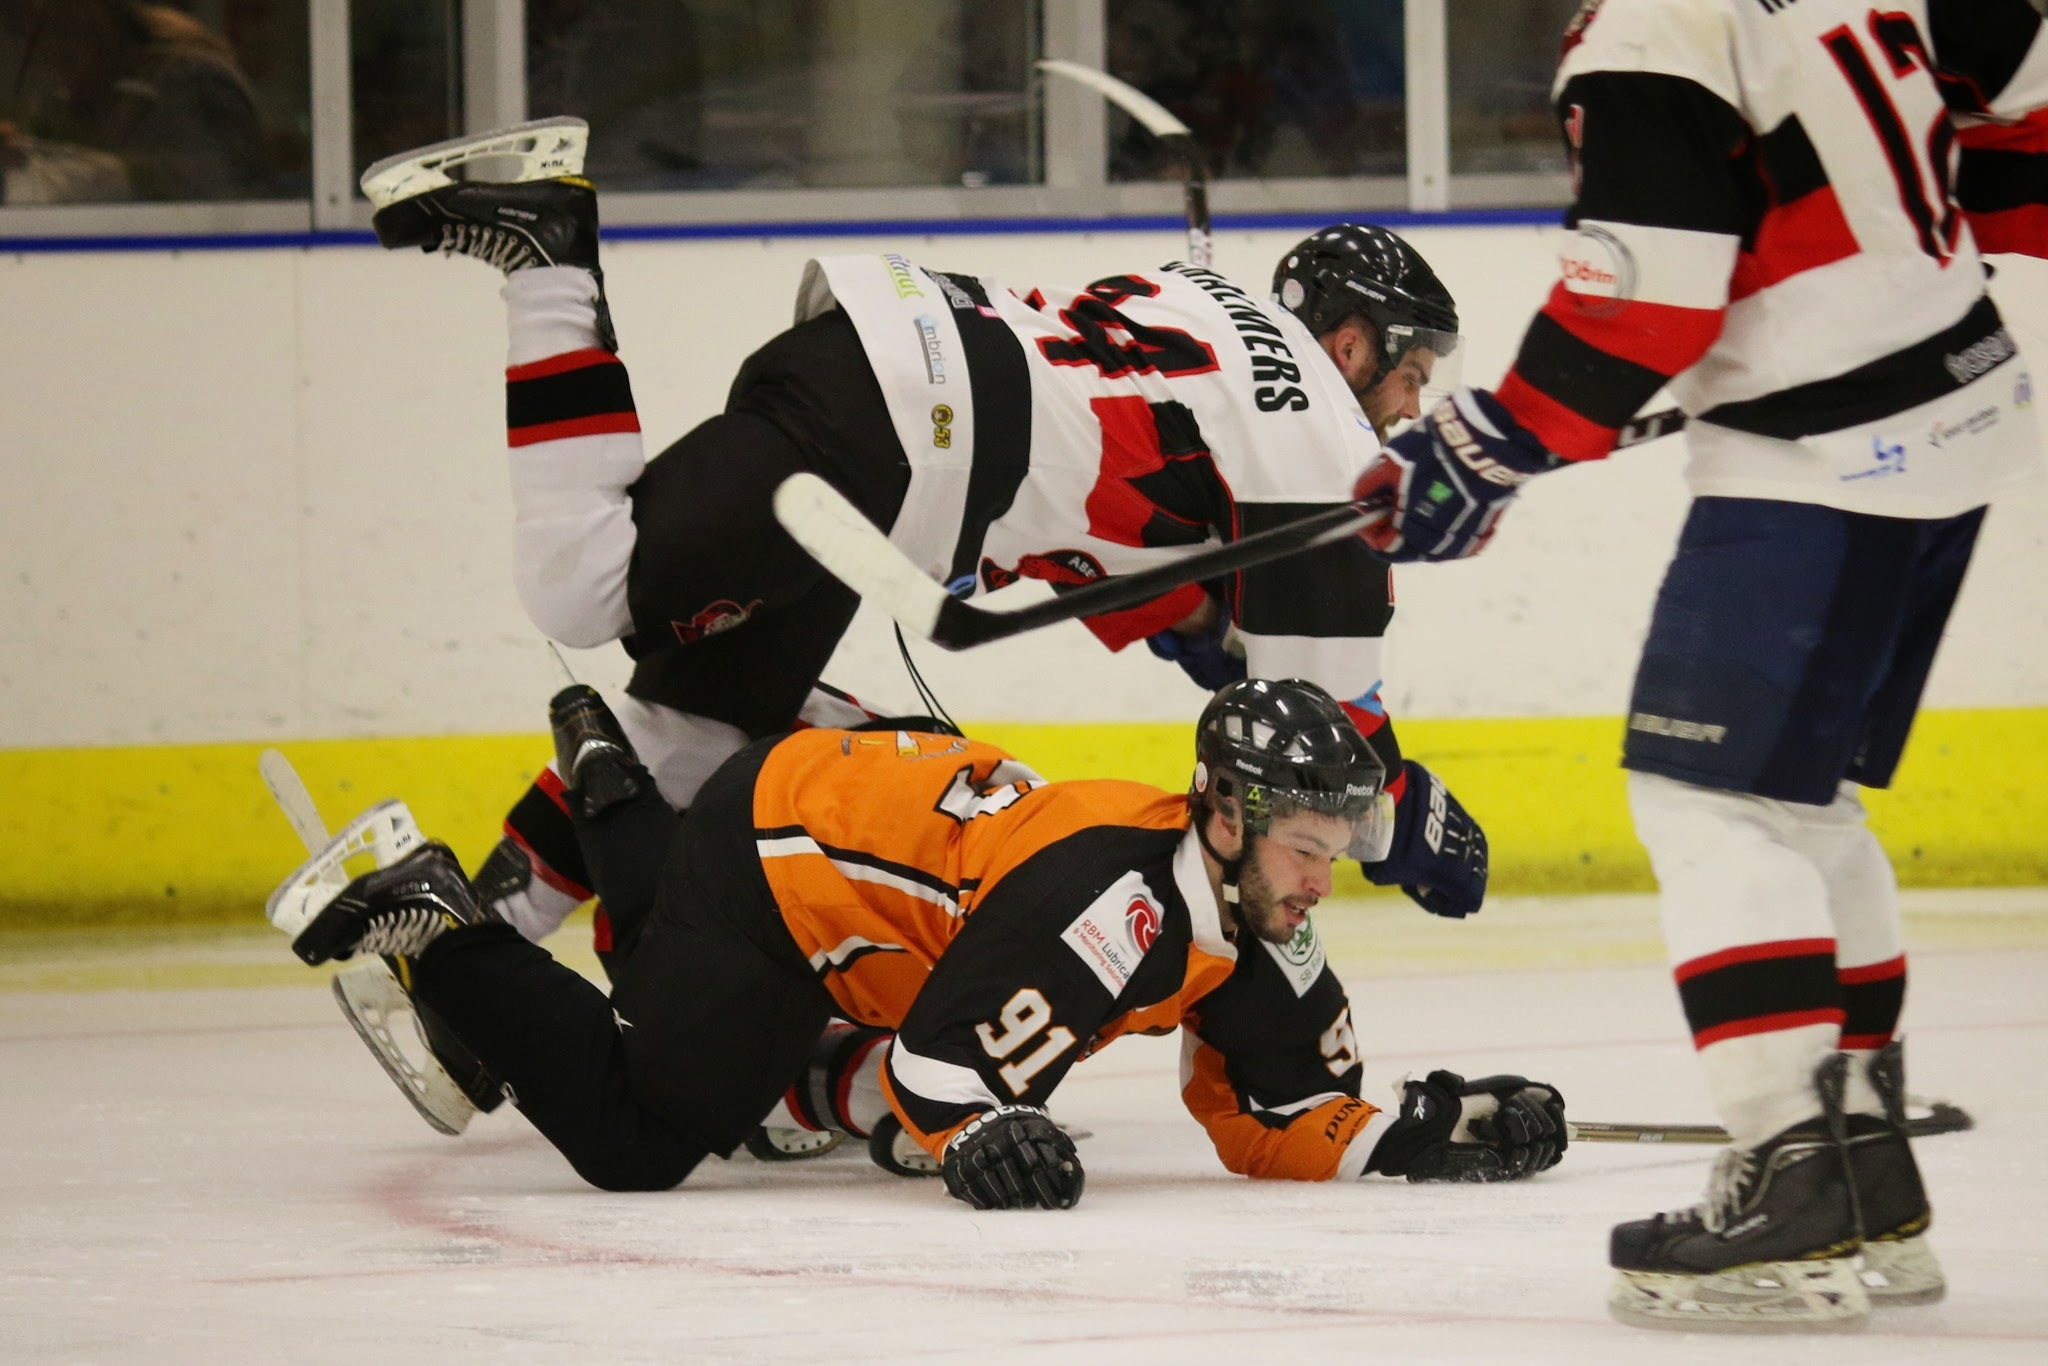 Aberdeen Lynx saw off North Ayrshire Wild 8-1 to set up a semi-final with Dundee Tigers